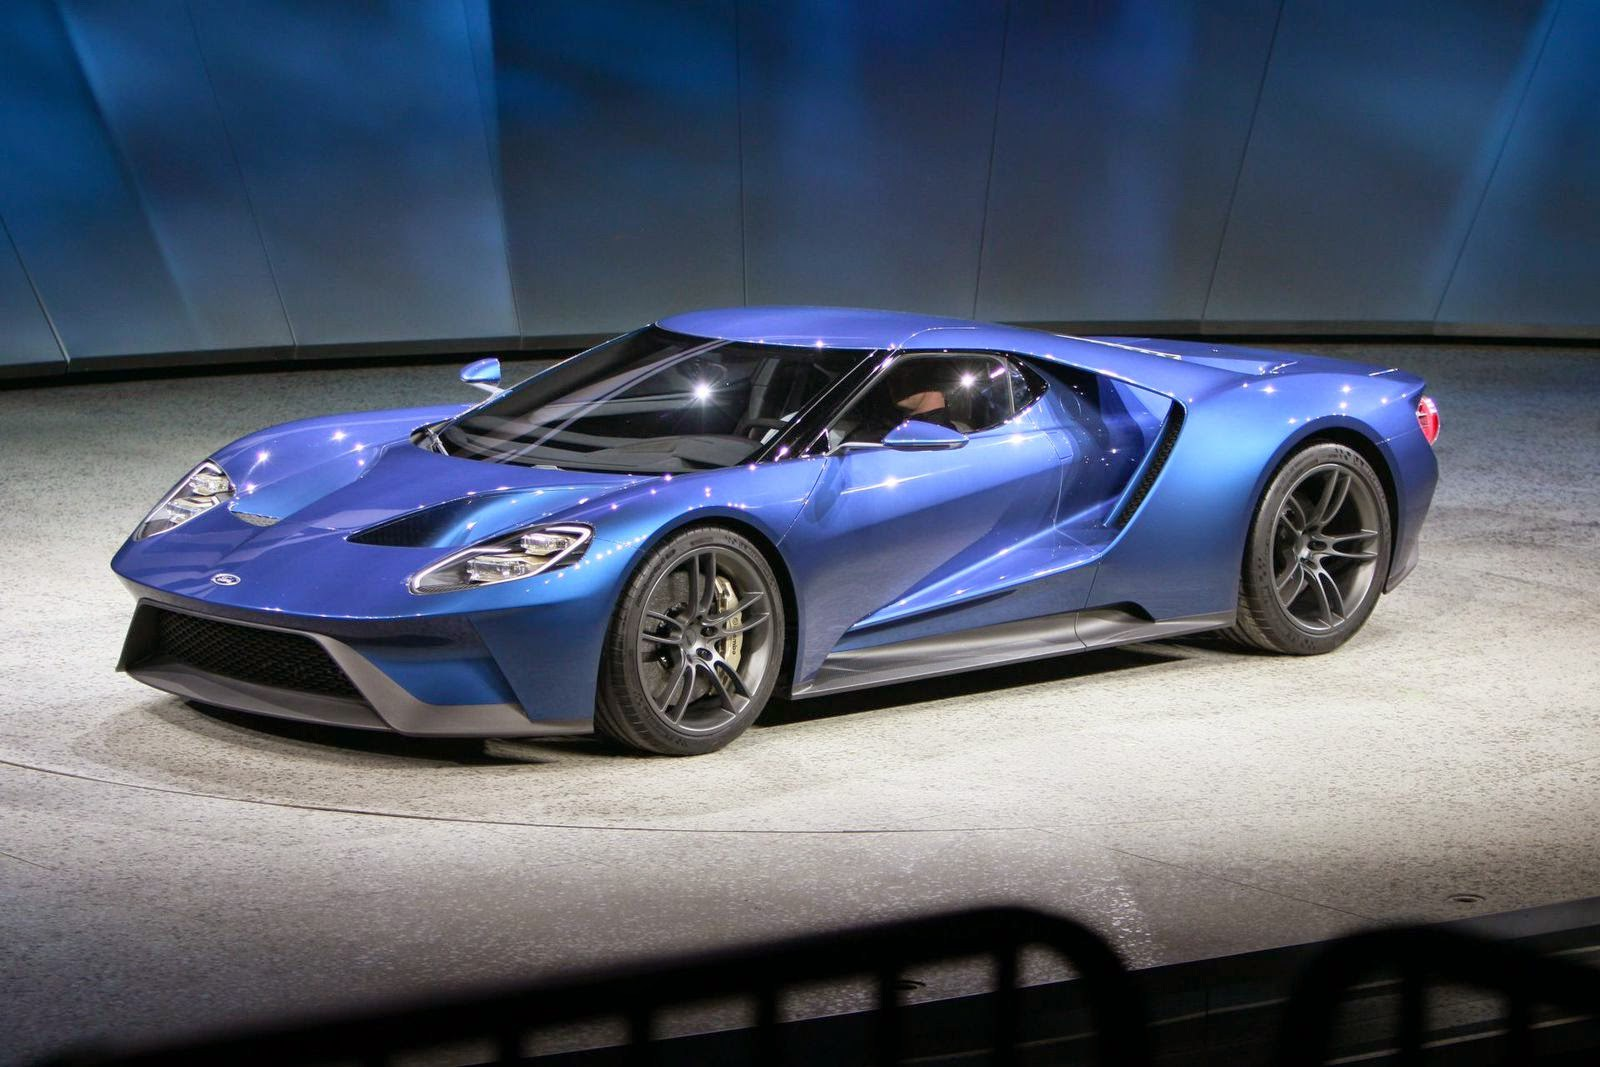 2017 Ford GT Concept 600 HP SuperCars Show 1600x1067